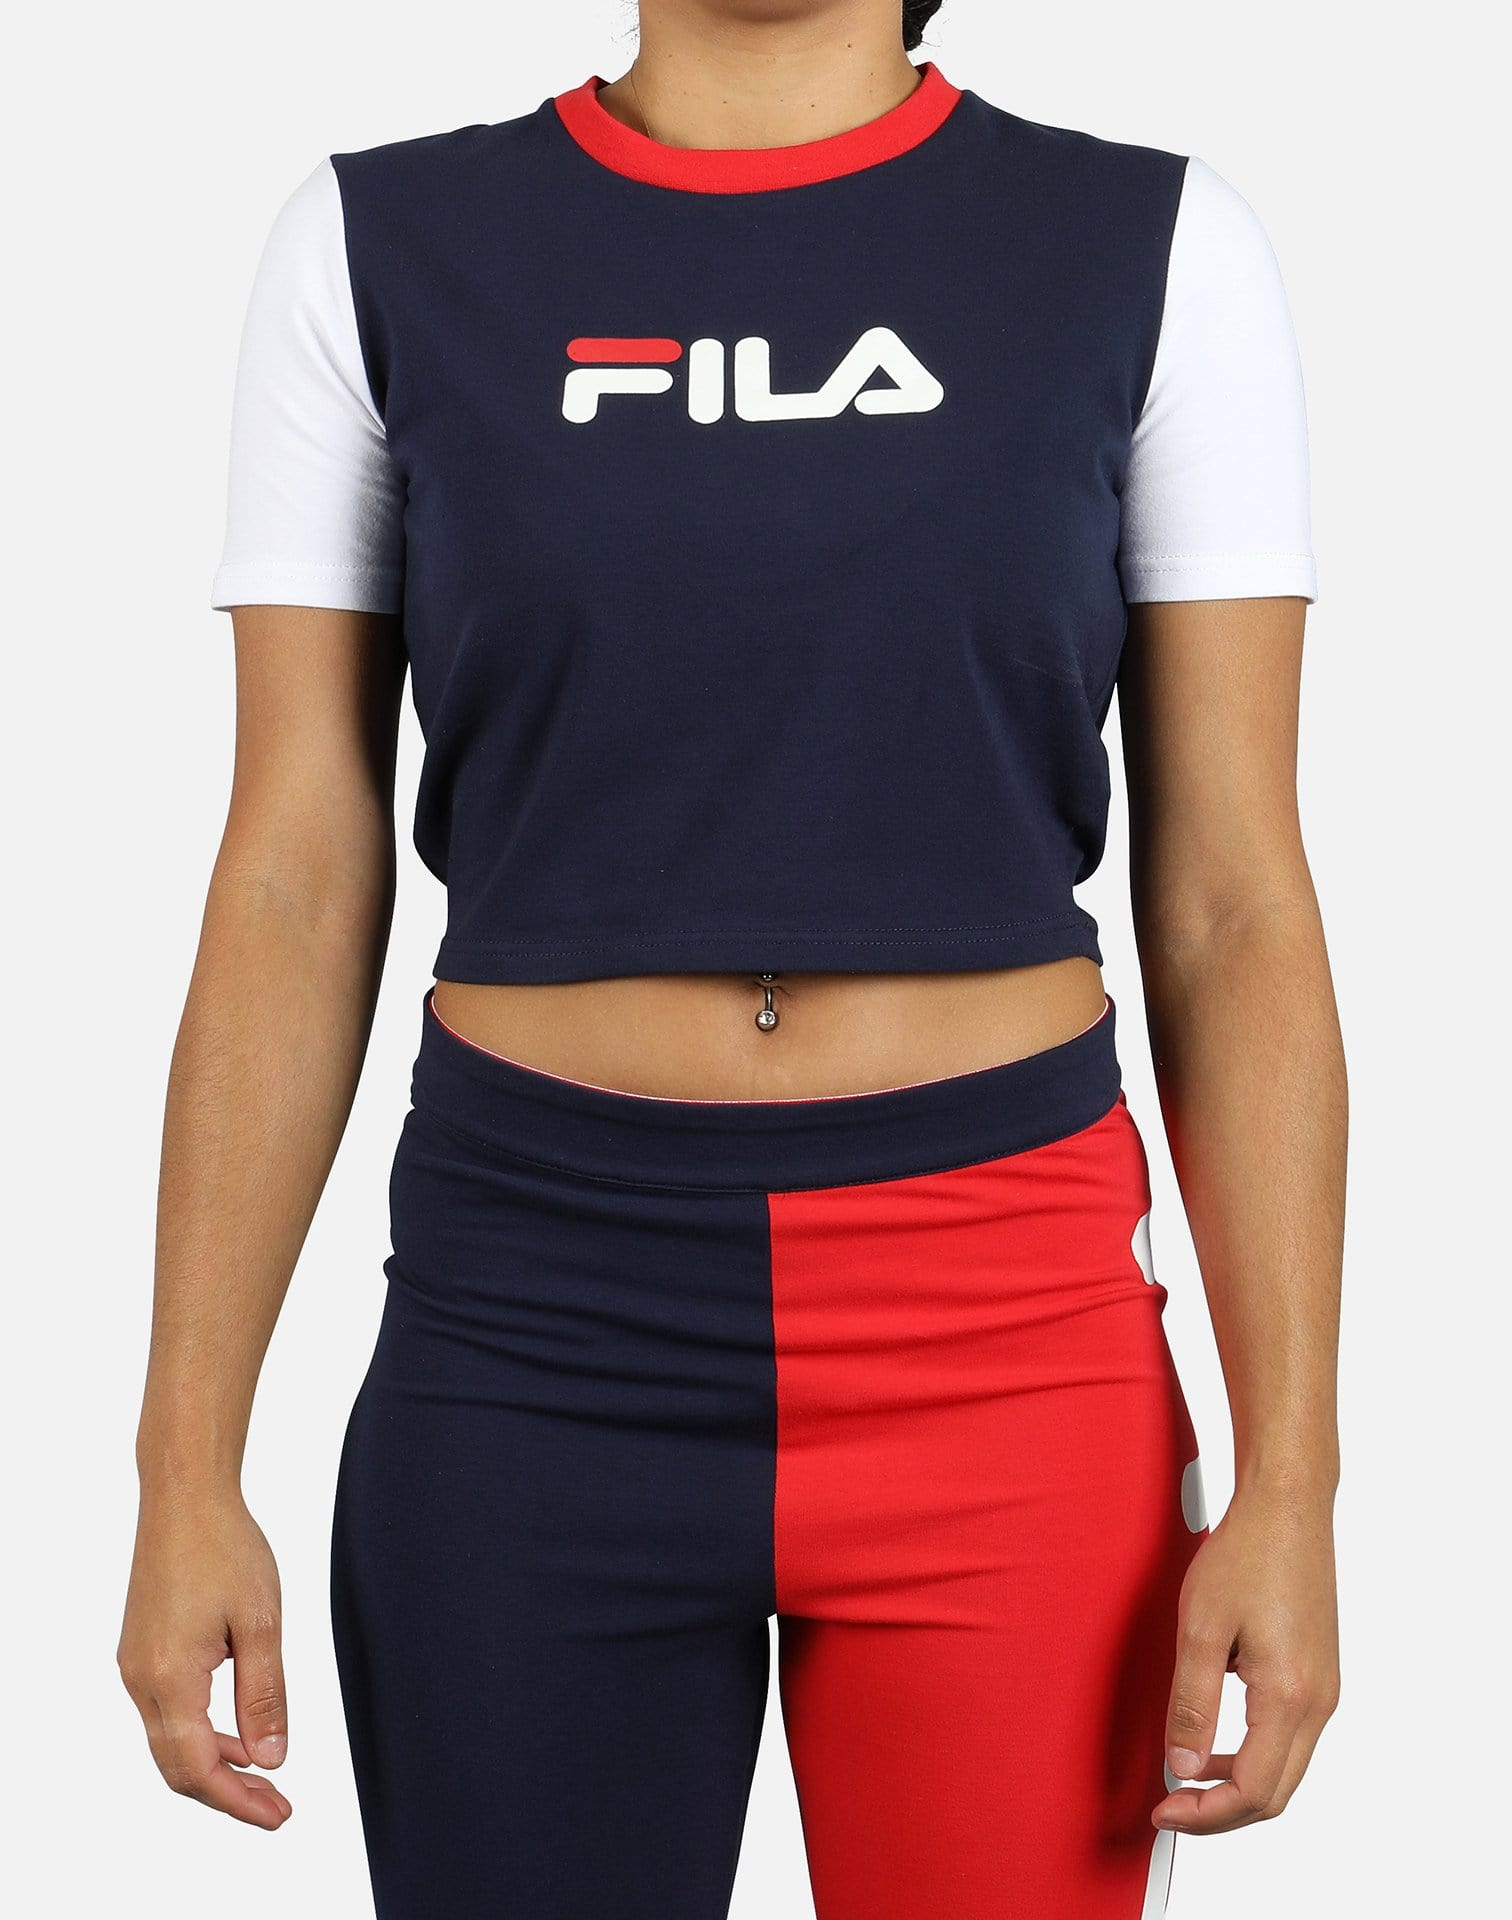 FILA Women's Anna Crop Top